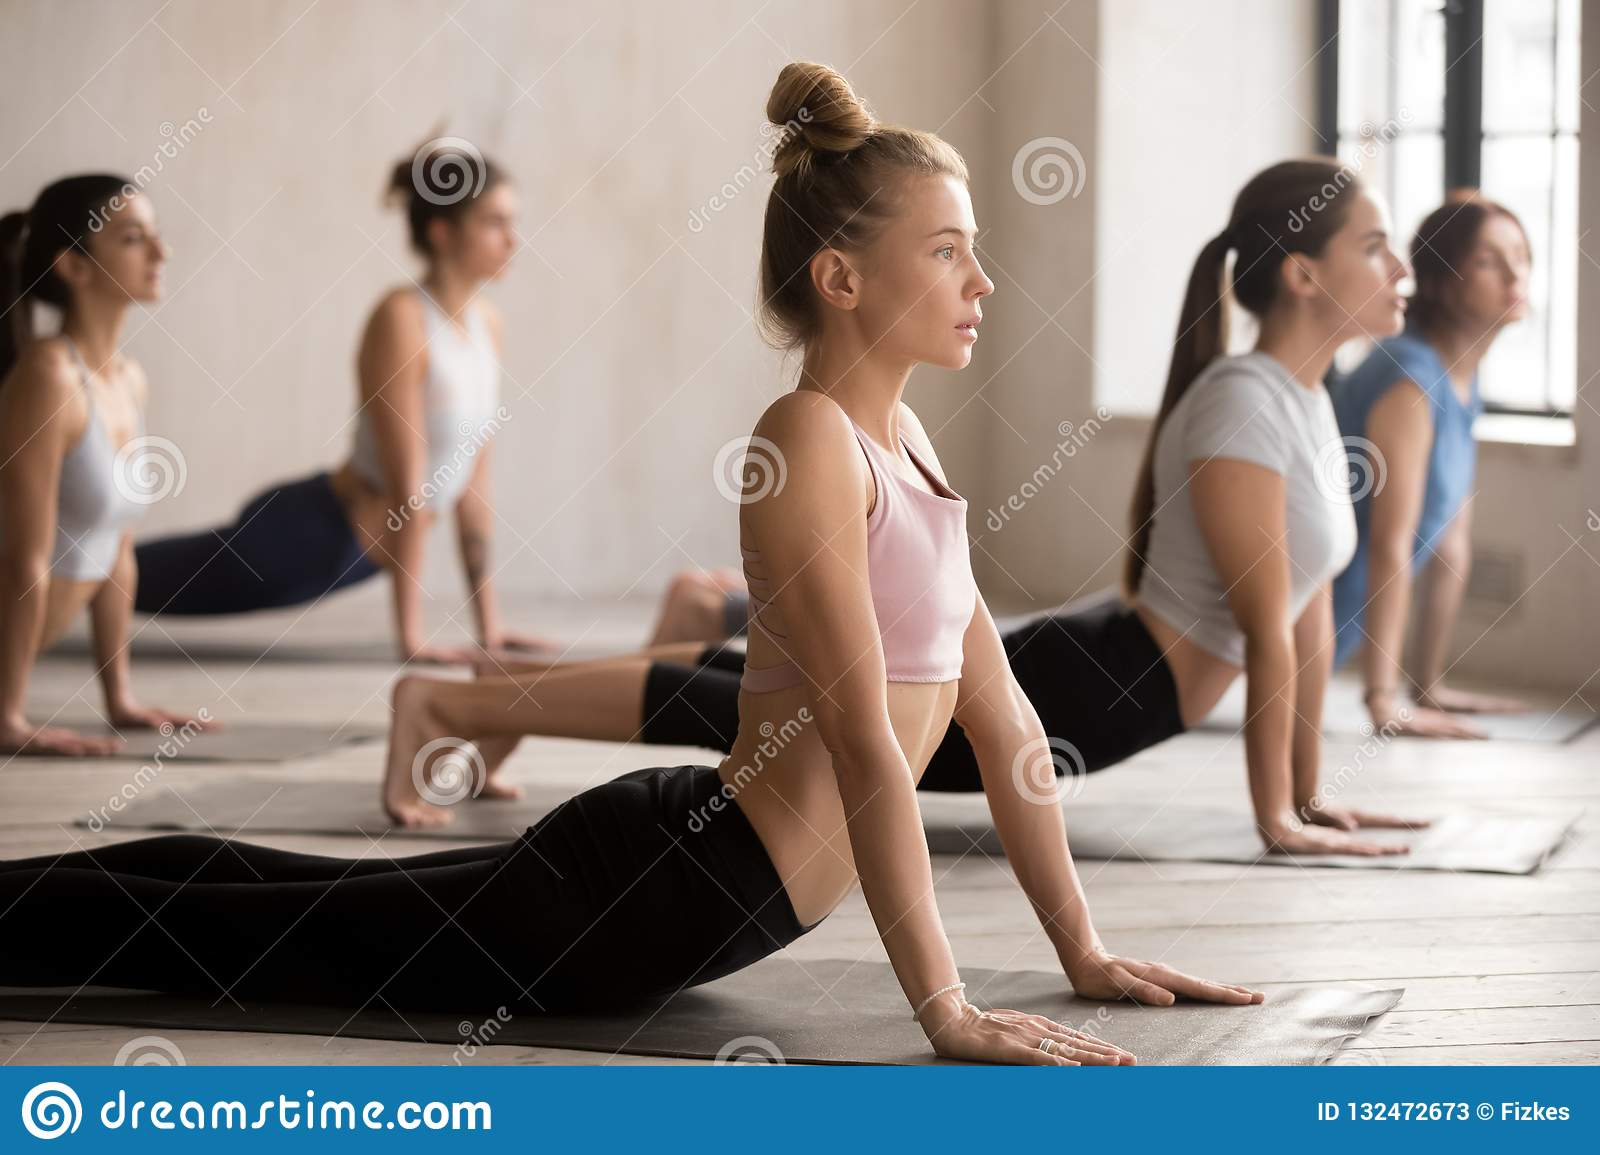 Group of women practicing yoga lesson, upward facing dog pose